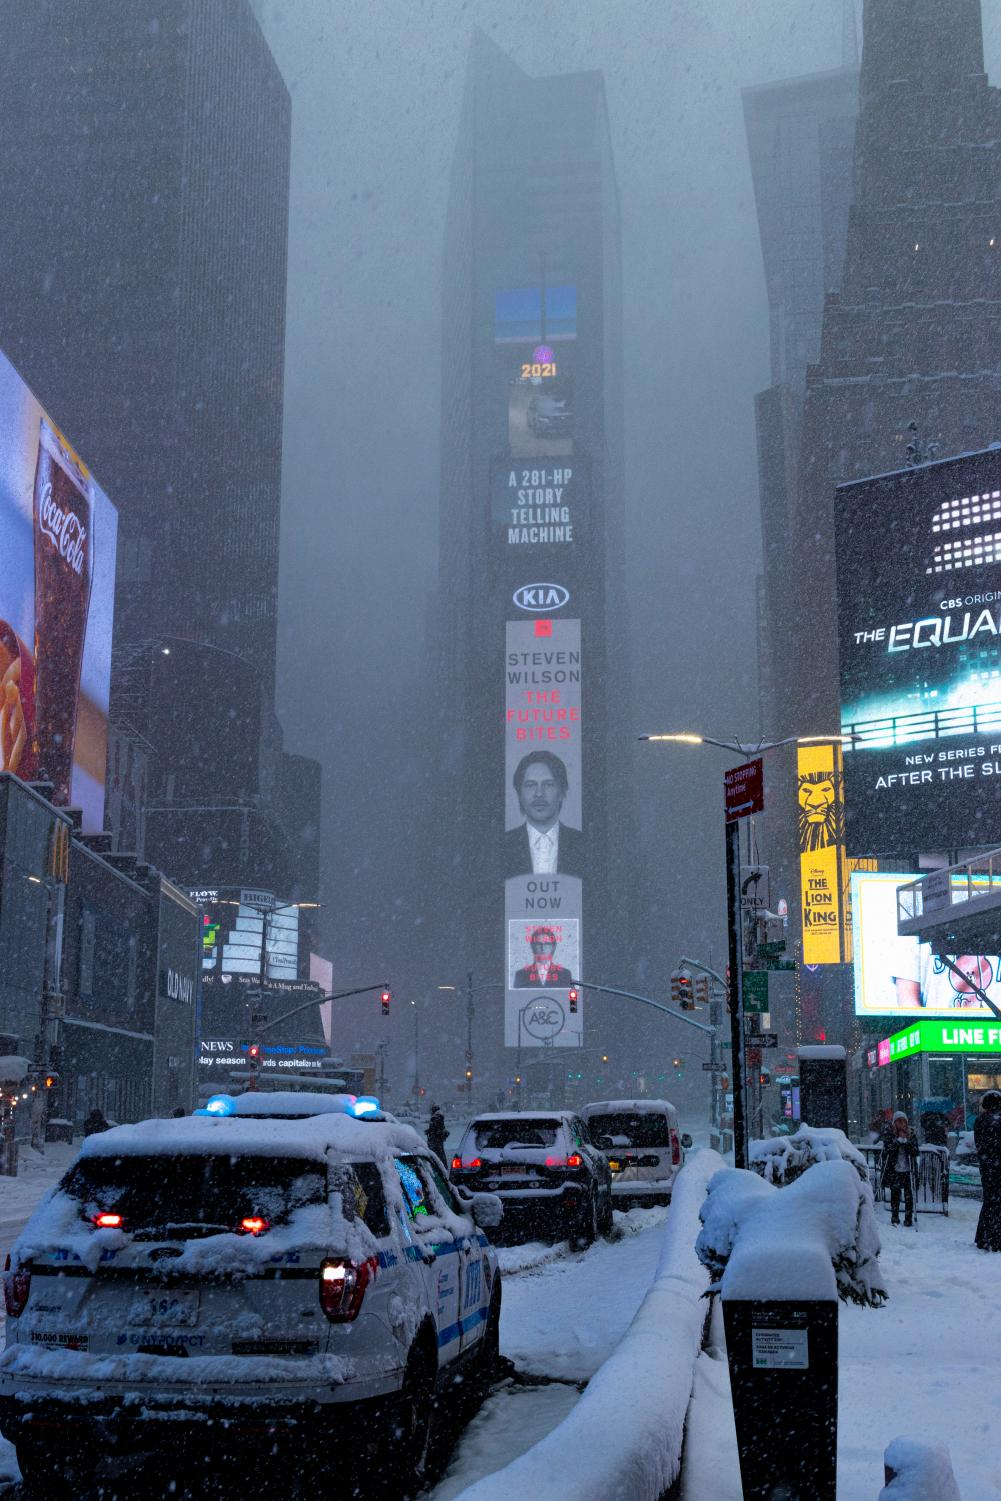 One Times Square with heavy snow fall obscuring the view